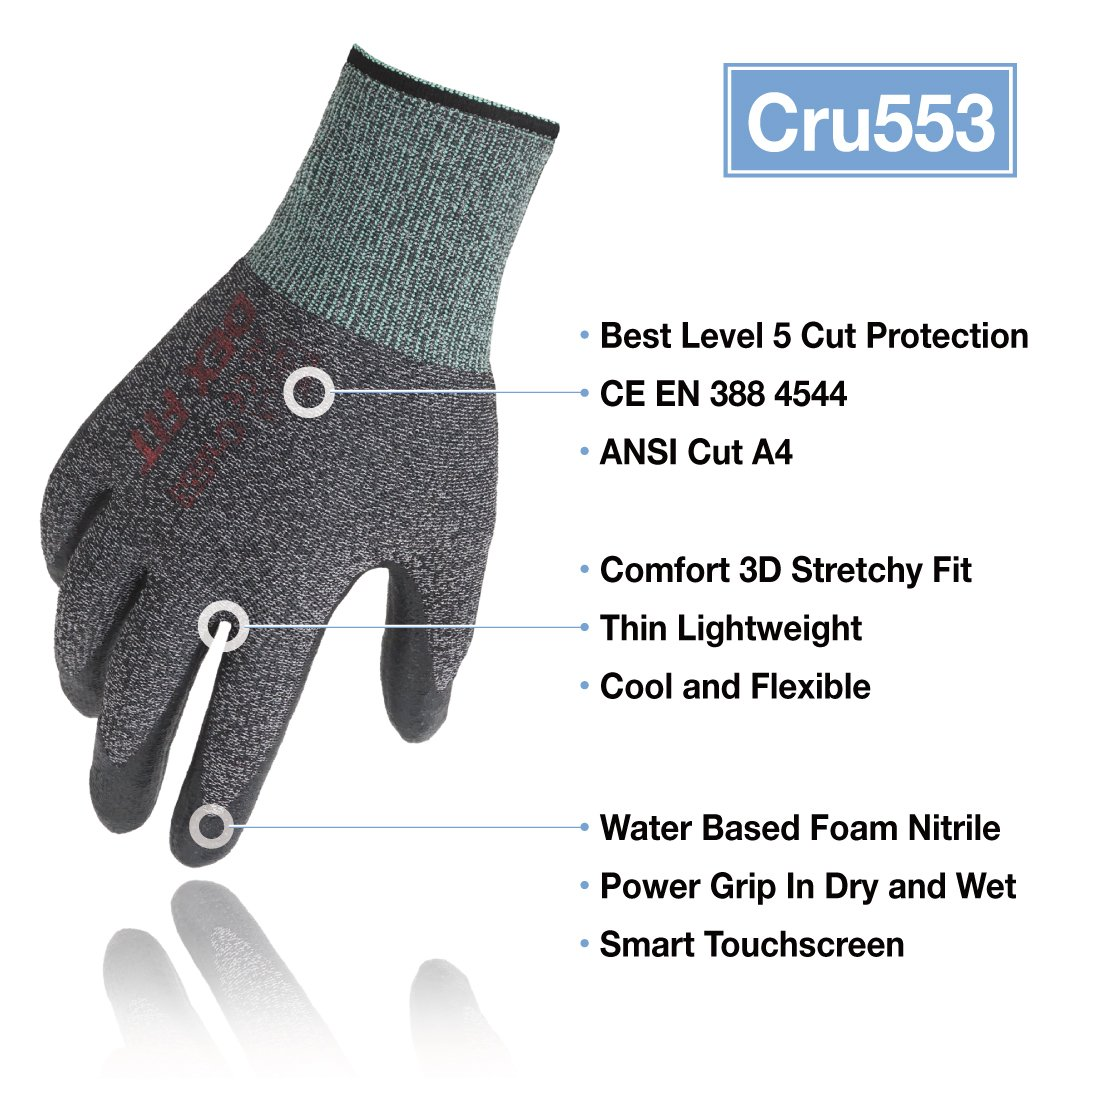 DEX FIT Utility 3D Cut Safety Gloves CR533, Comfort Stretch Fit, Power Grip, Smart Touch, Thin & Lightweight, Washable… 2